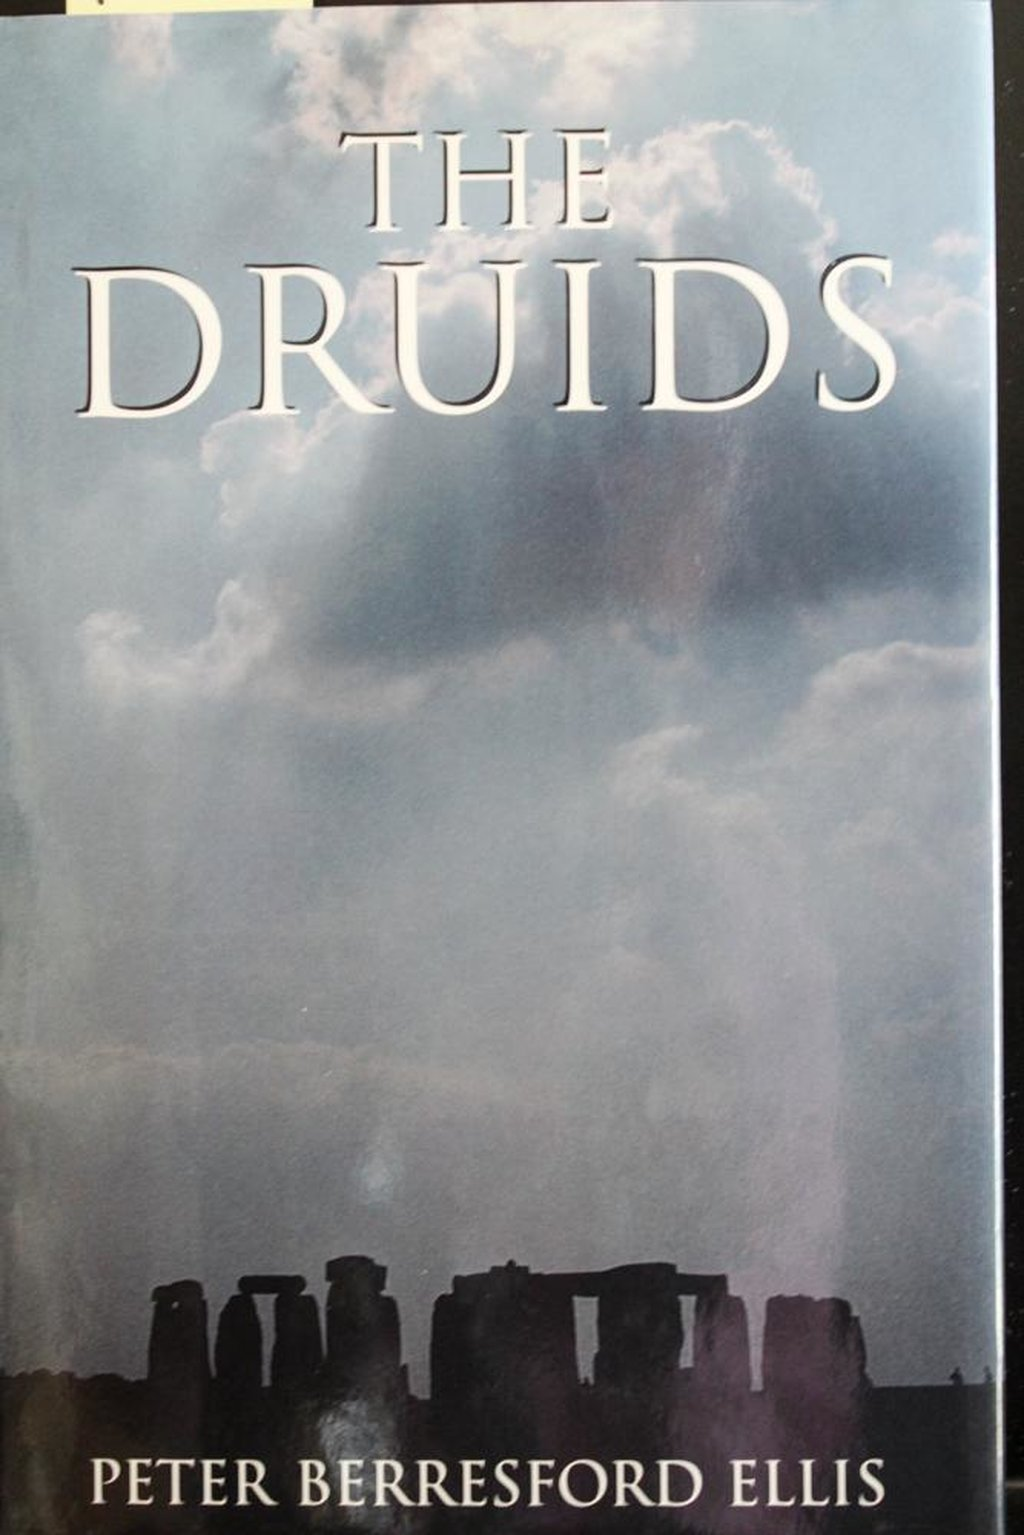 THE DRUIDS - PETER BERRESFORD ELLIS